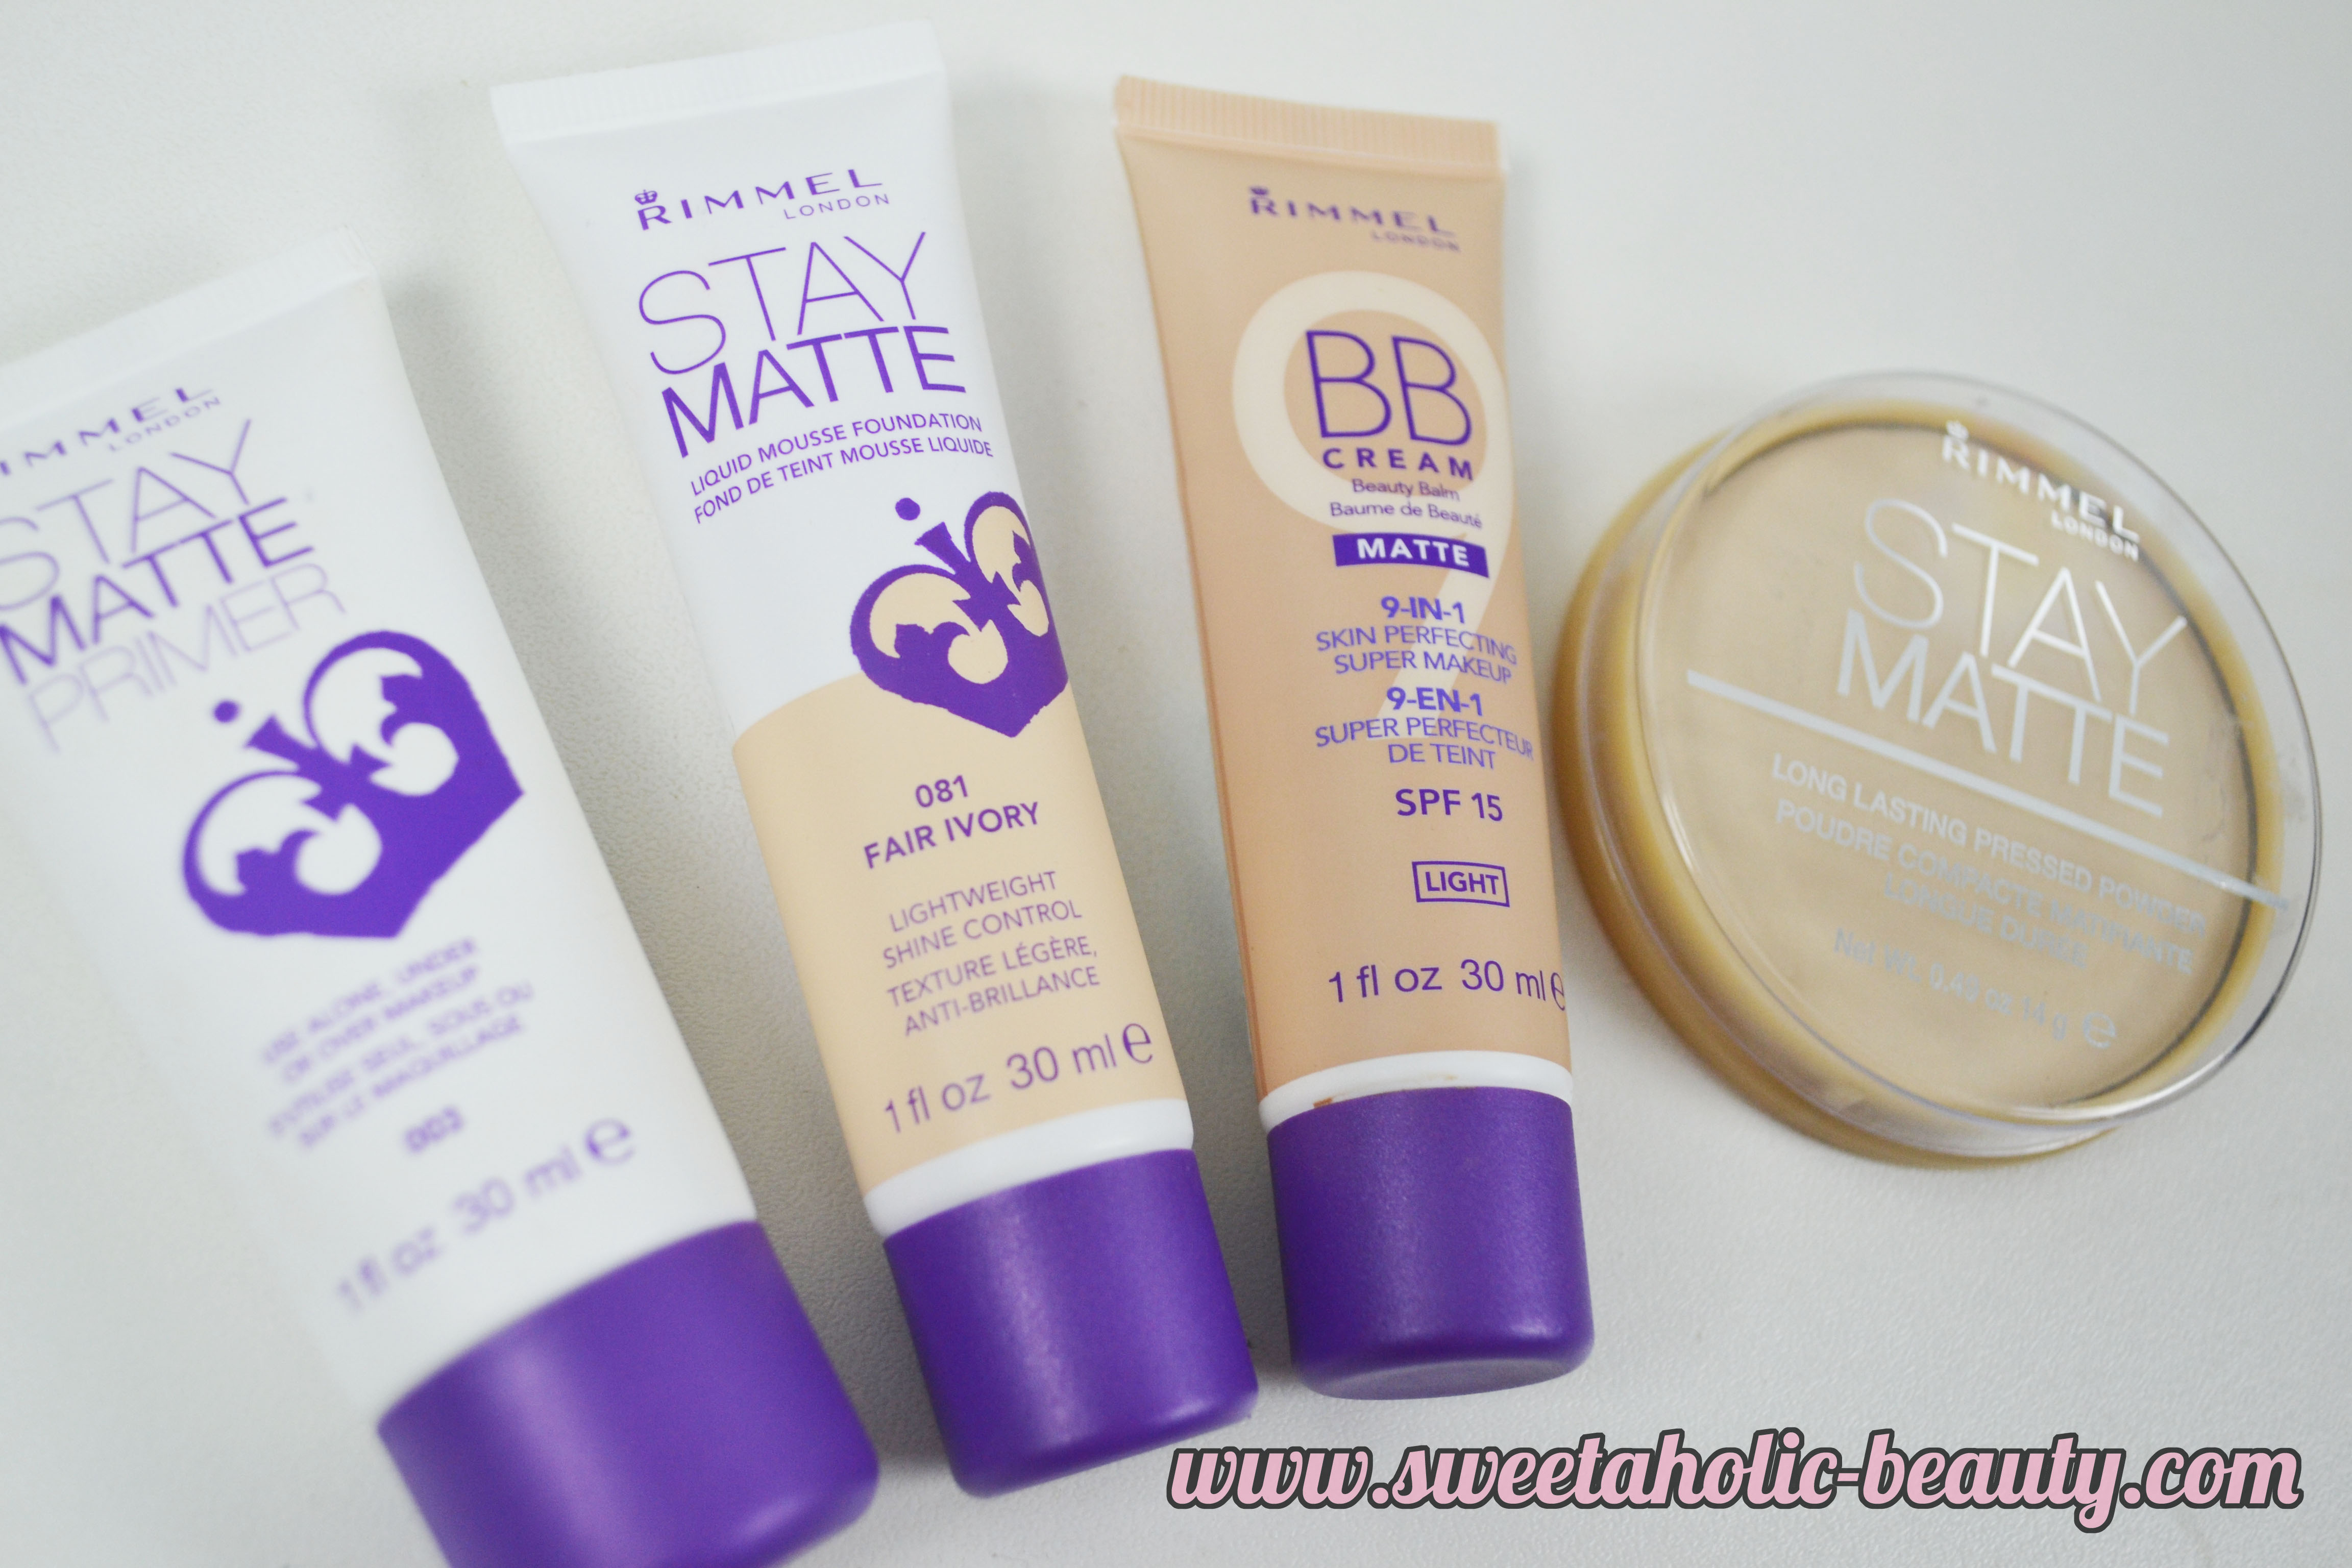 Rimmel London, Rimmel London Stay Matte